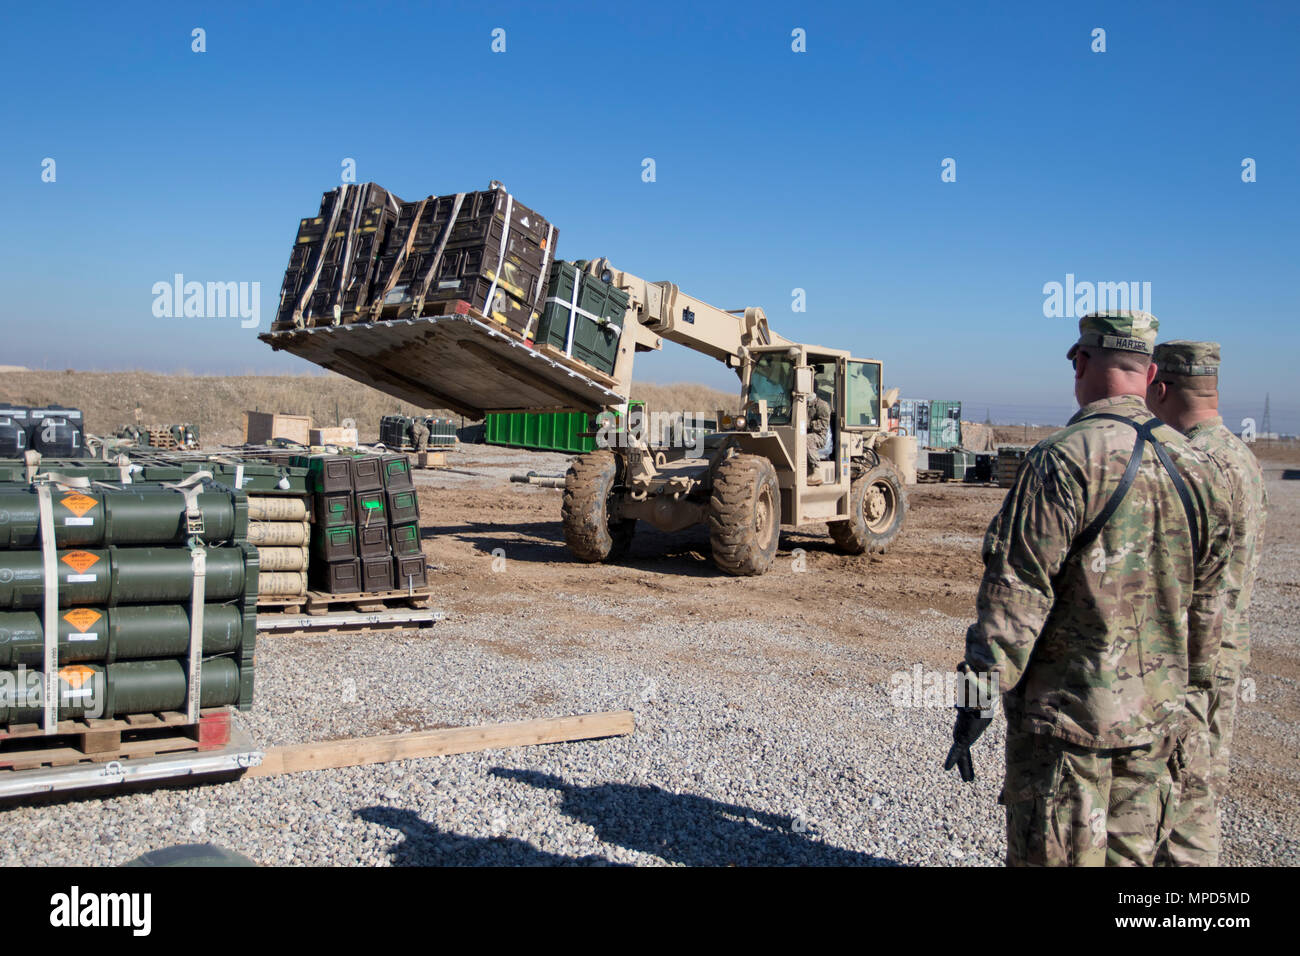 Brig. Gen. Robert D. Harter, deputy commanding general of the 1st Sustainment Command (Theater) / commanding general of the 316th Sustainment Command (Expeditionary), inspects the multi-national ammunition supply depot at Erbil, Iraq, on February 3, 2017. (U.S. Army photo by Staff Sgt. Dalton Smith) - Stock Image